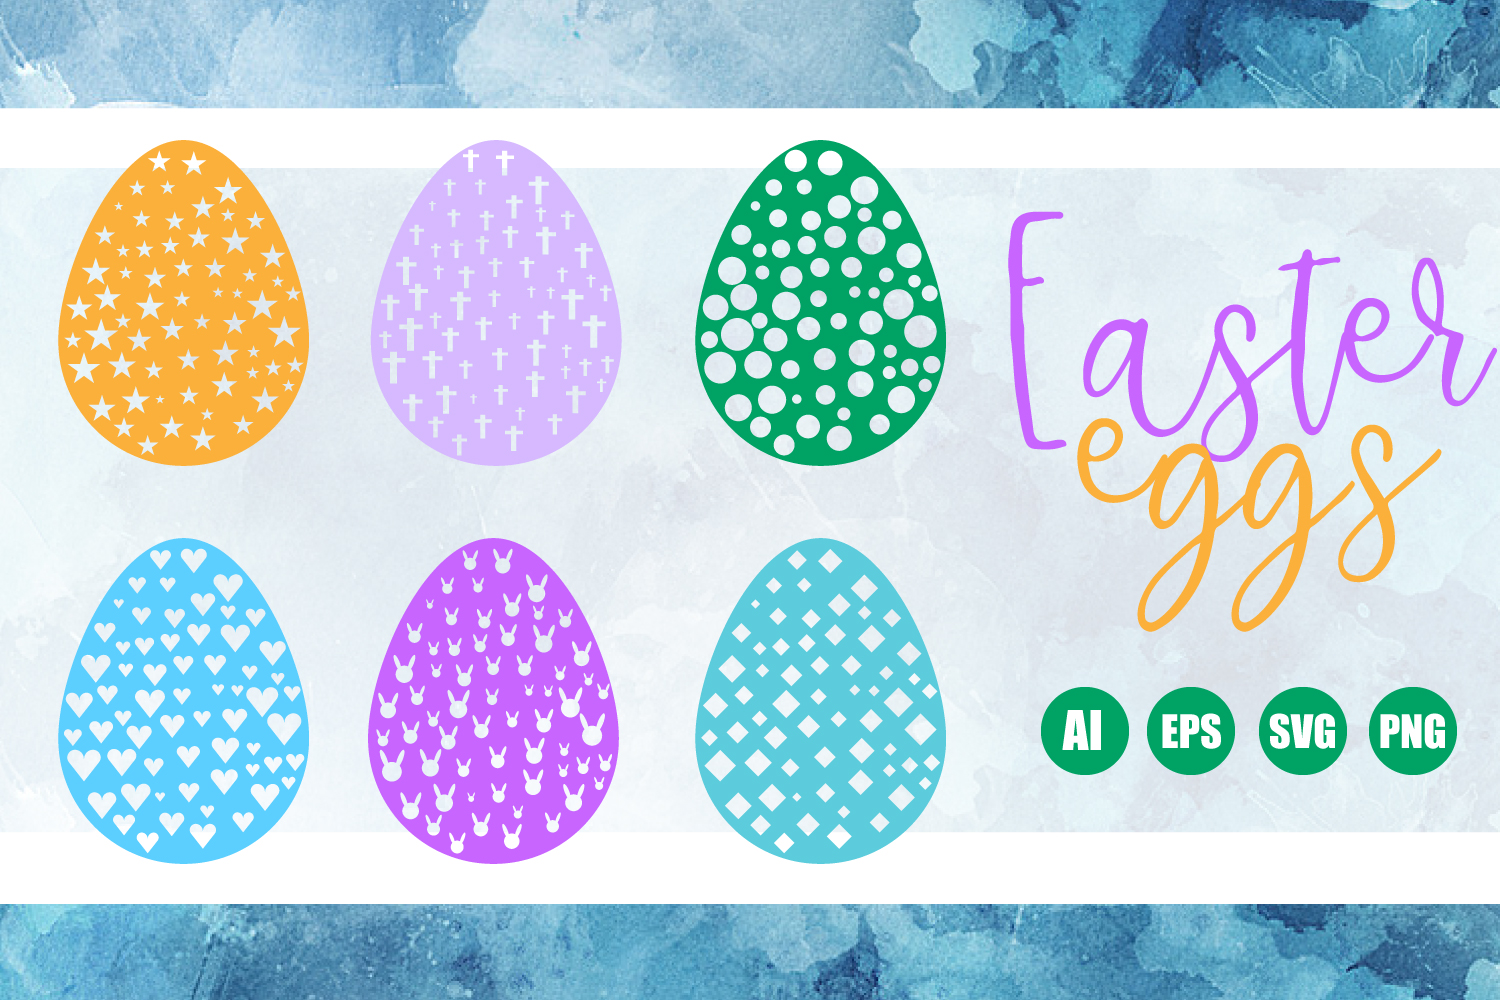 6 Paper Cut Easter Eggs SVG, EPS, AI, PDF, PNG example image 1